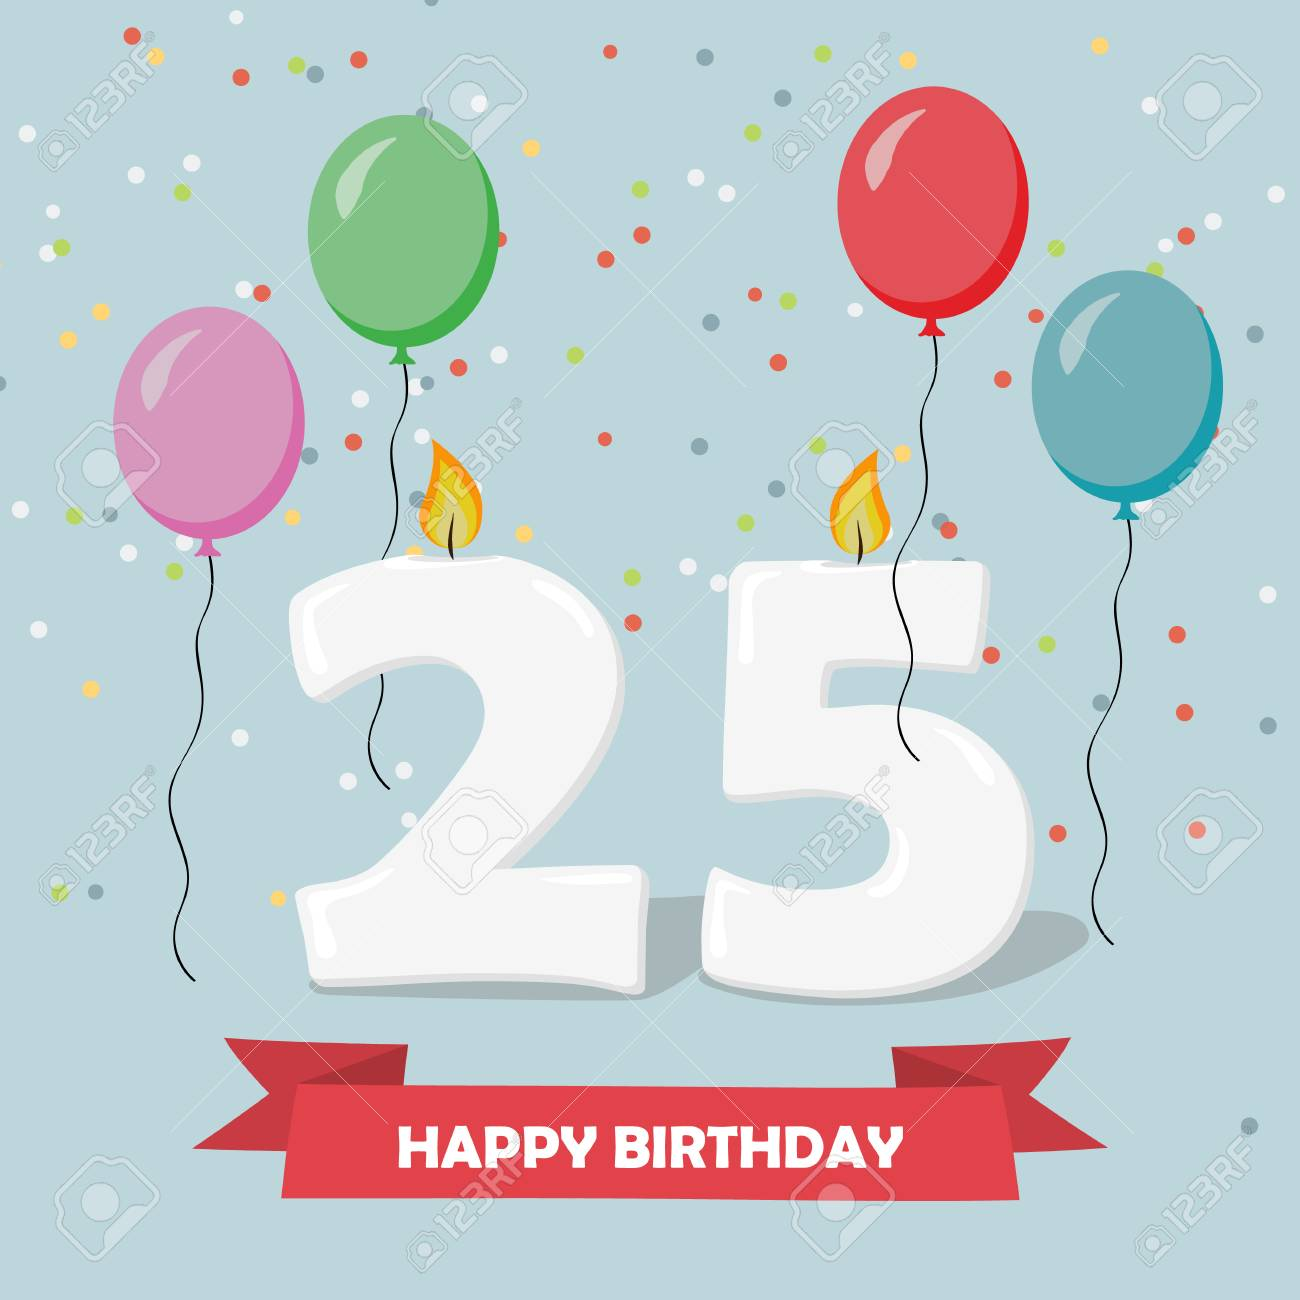 25 Years Celebration Happy Birthday Greeting Card With Candels Royalty Free Cliparts Vectors And Stock Illustration Image 93982446